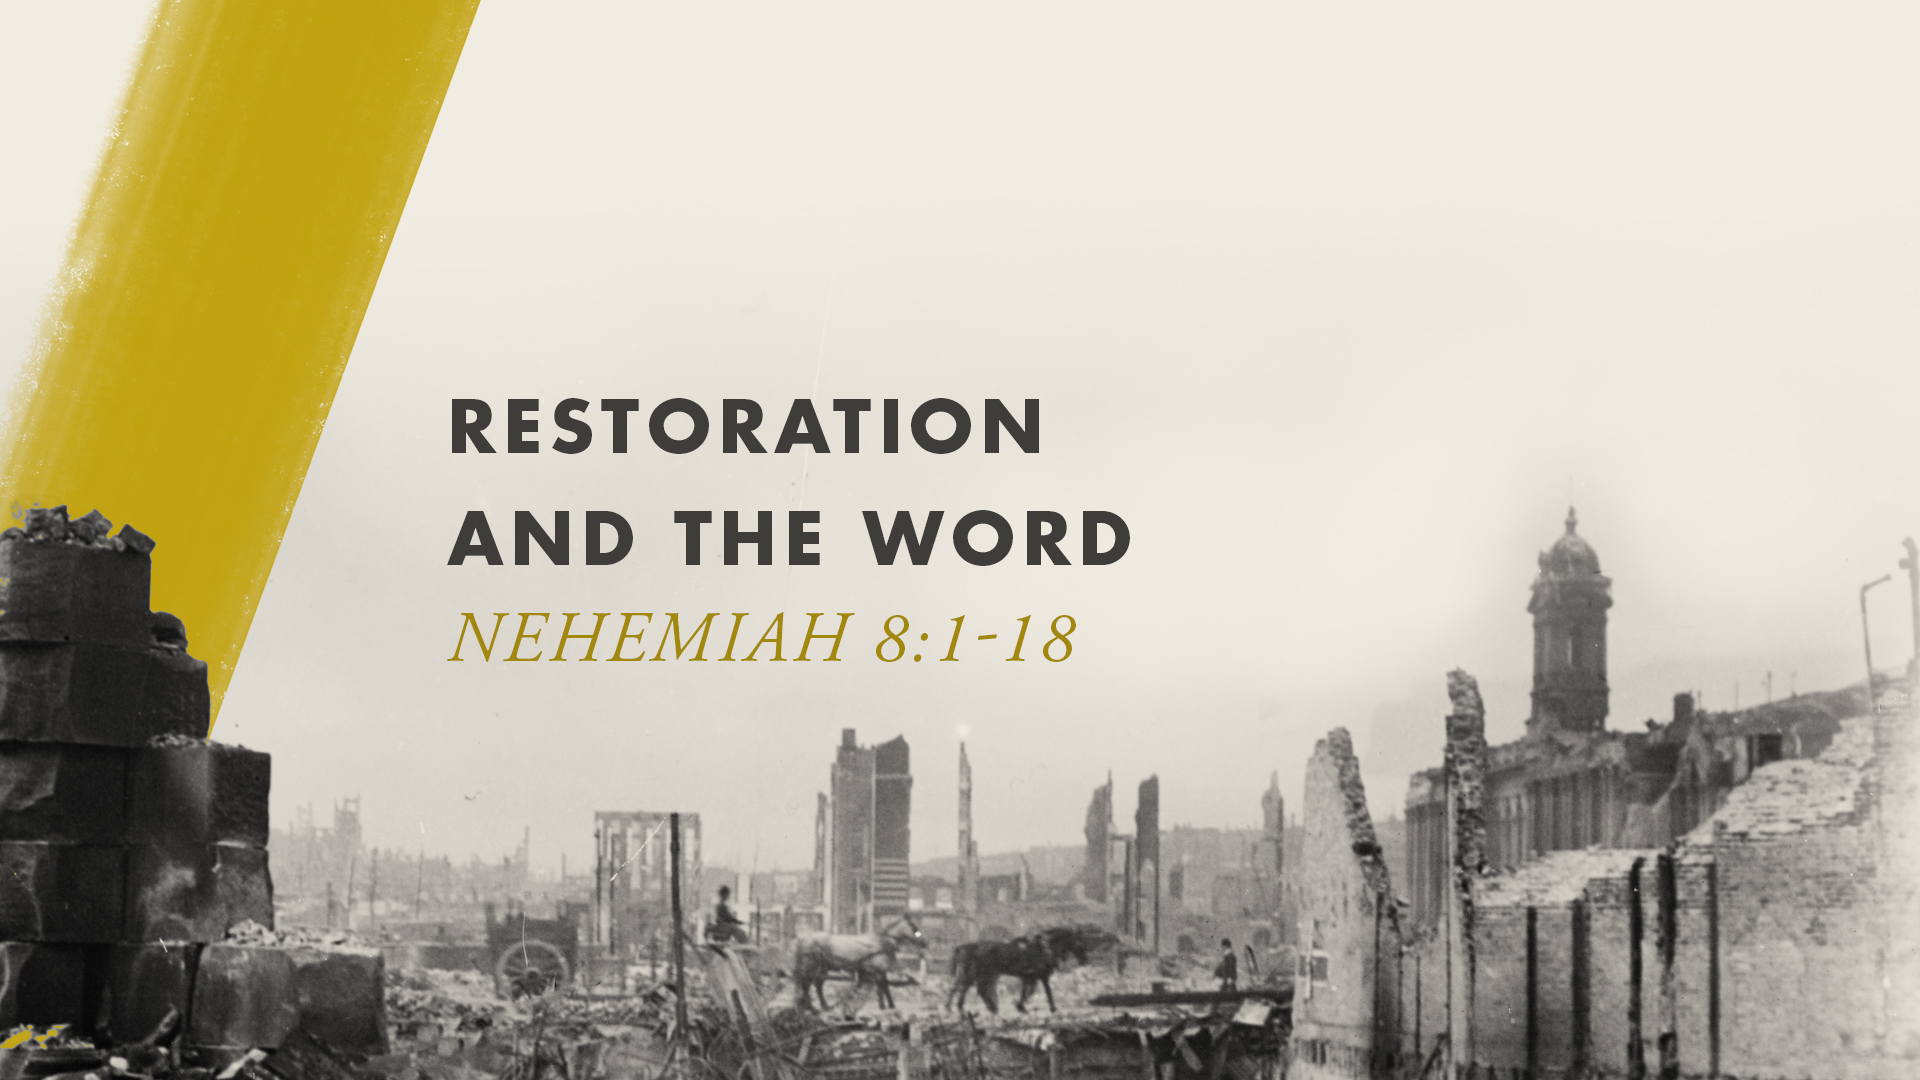 Restoration and the Word